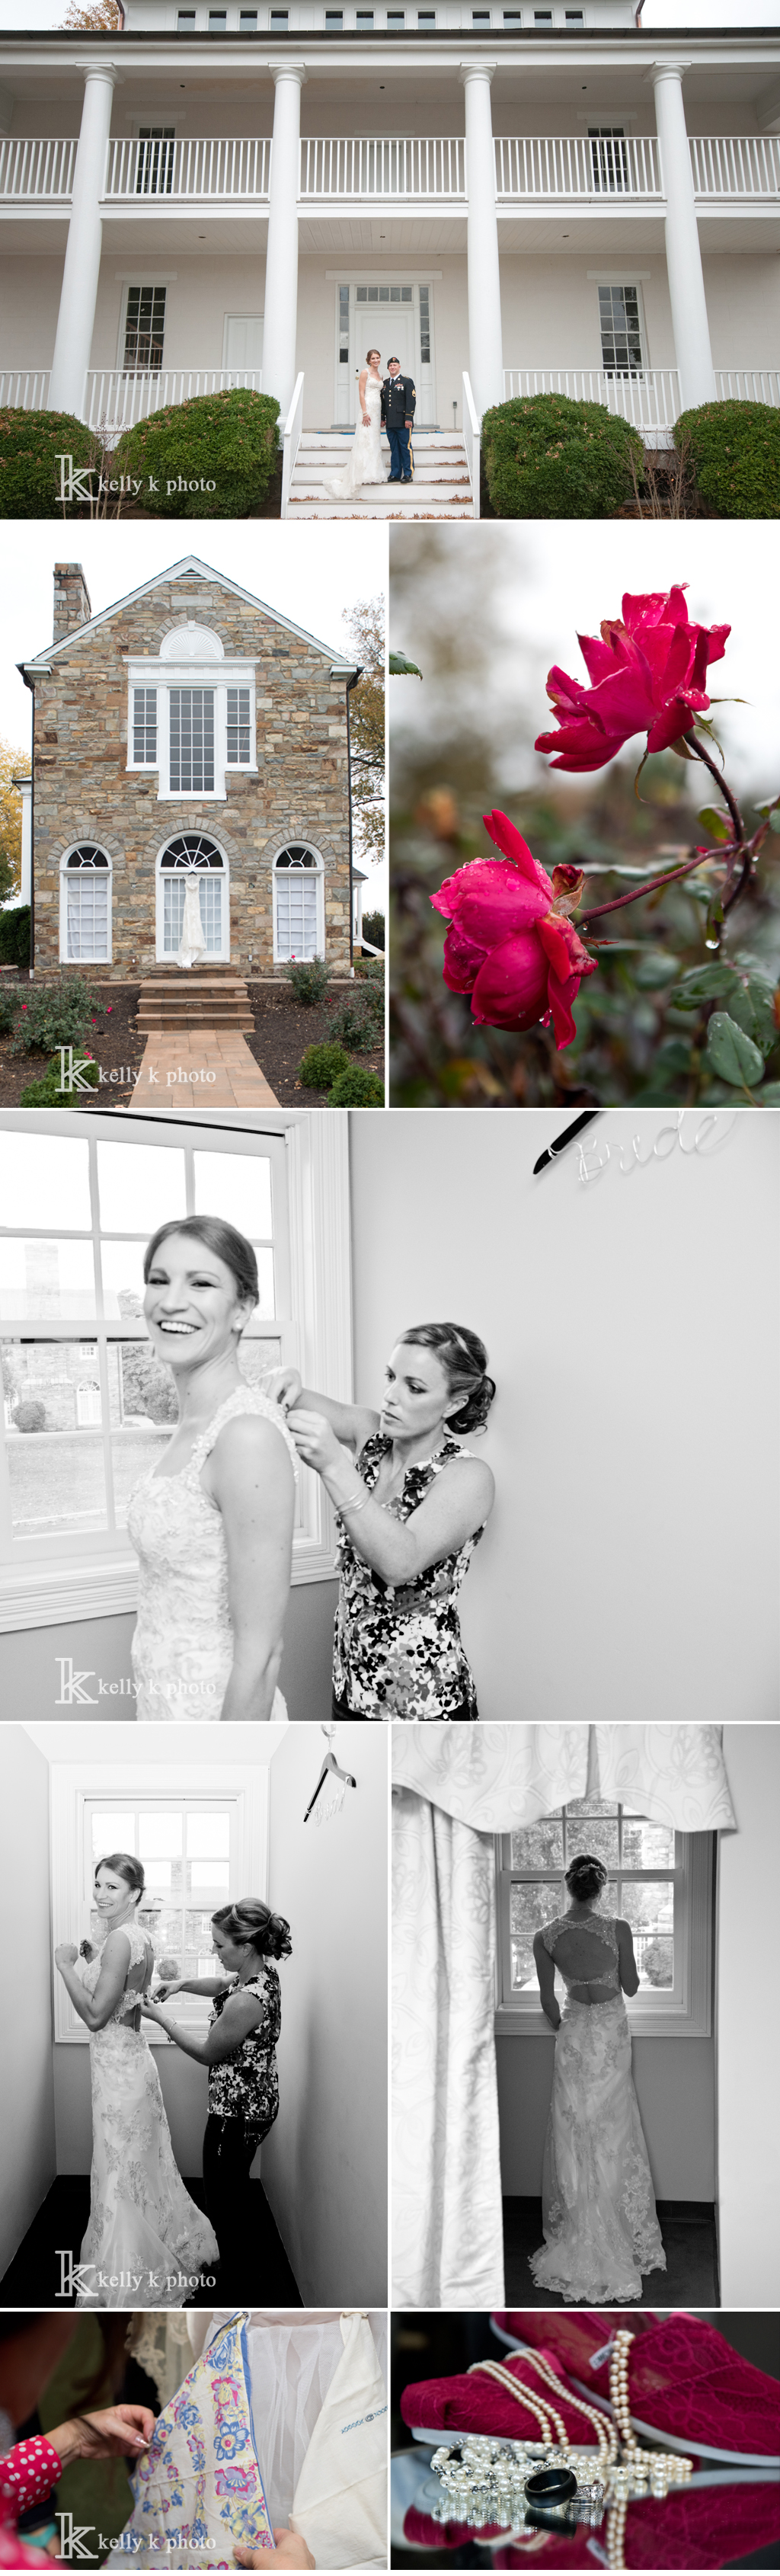 KellyKPhoto_WeddingPhotography_HudsonWI_1